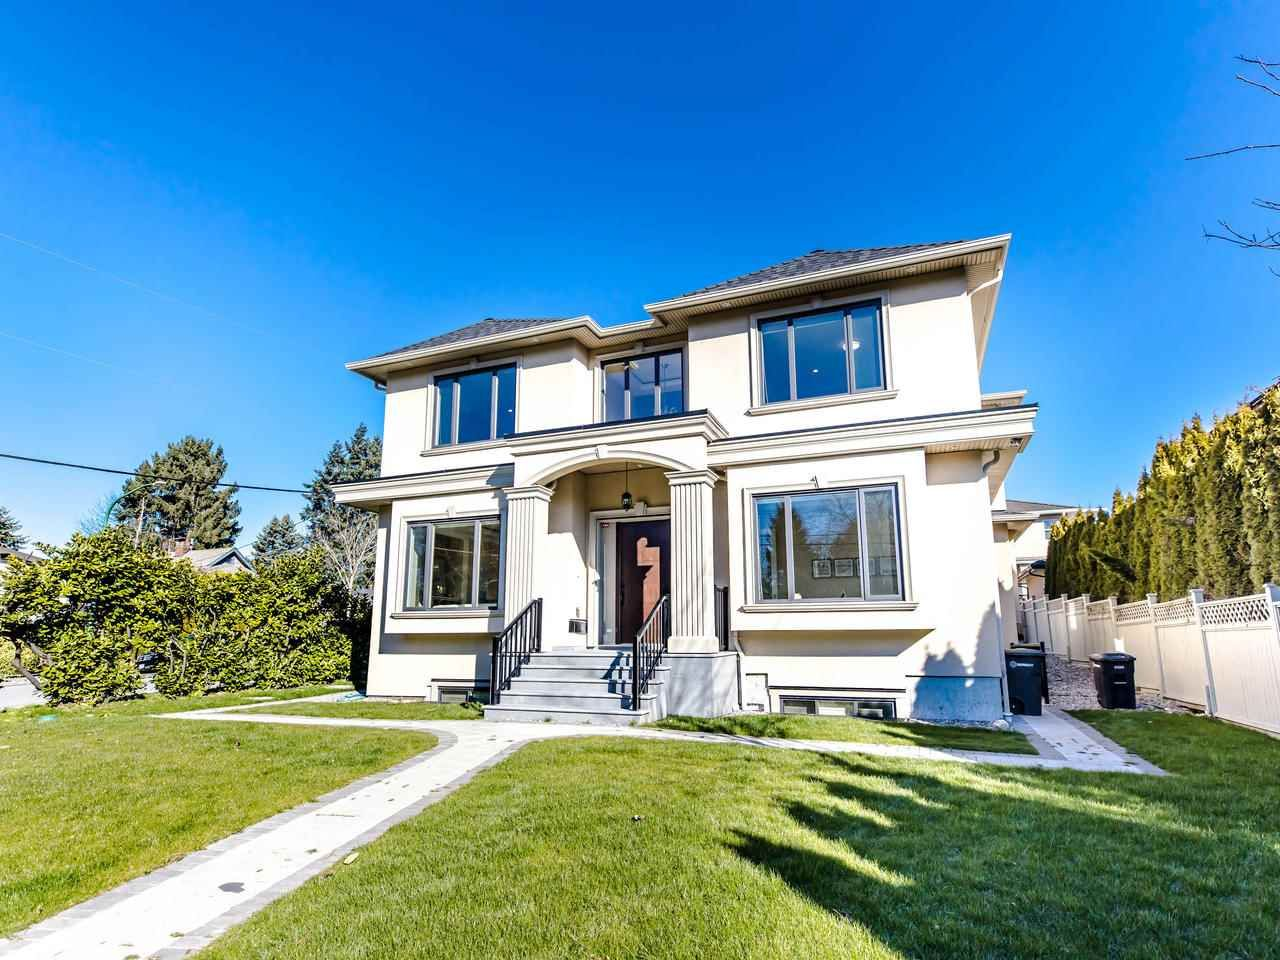 Main Photo: 4211 MOSCROP Street in Burnaby: Burnaby Hospital House for sale (Burnaby South)  : MLS®# R2585797